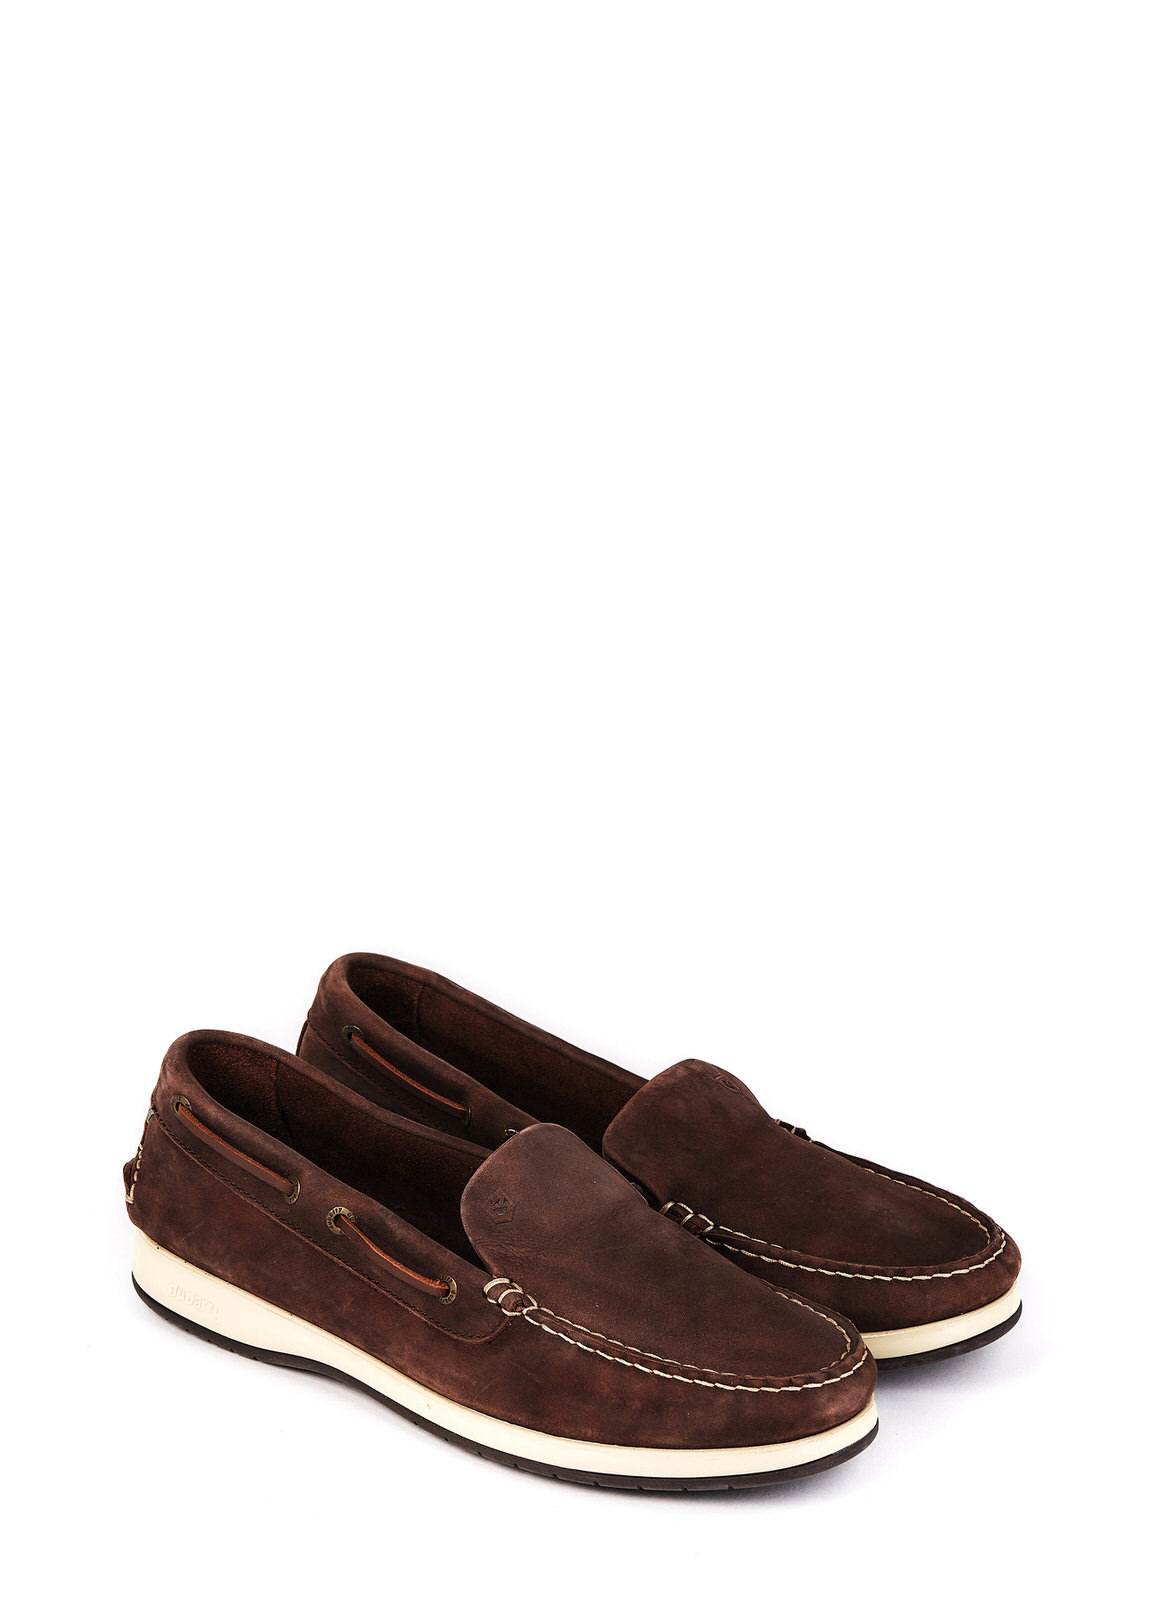 Dubarry_Marco XLT Deck Shoe - Donkey Brown_Image_1